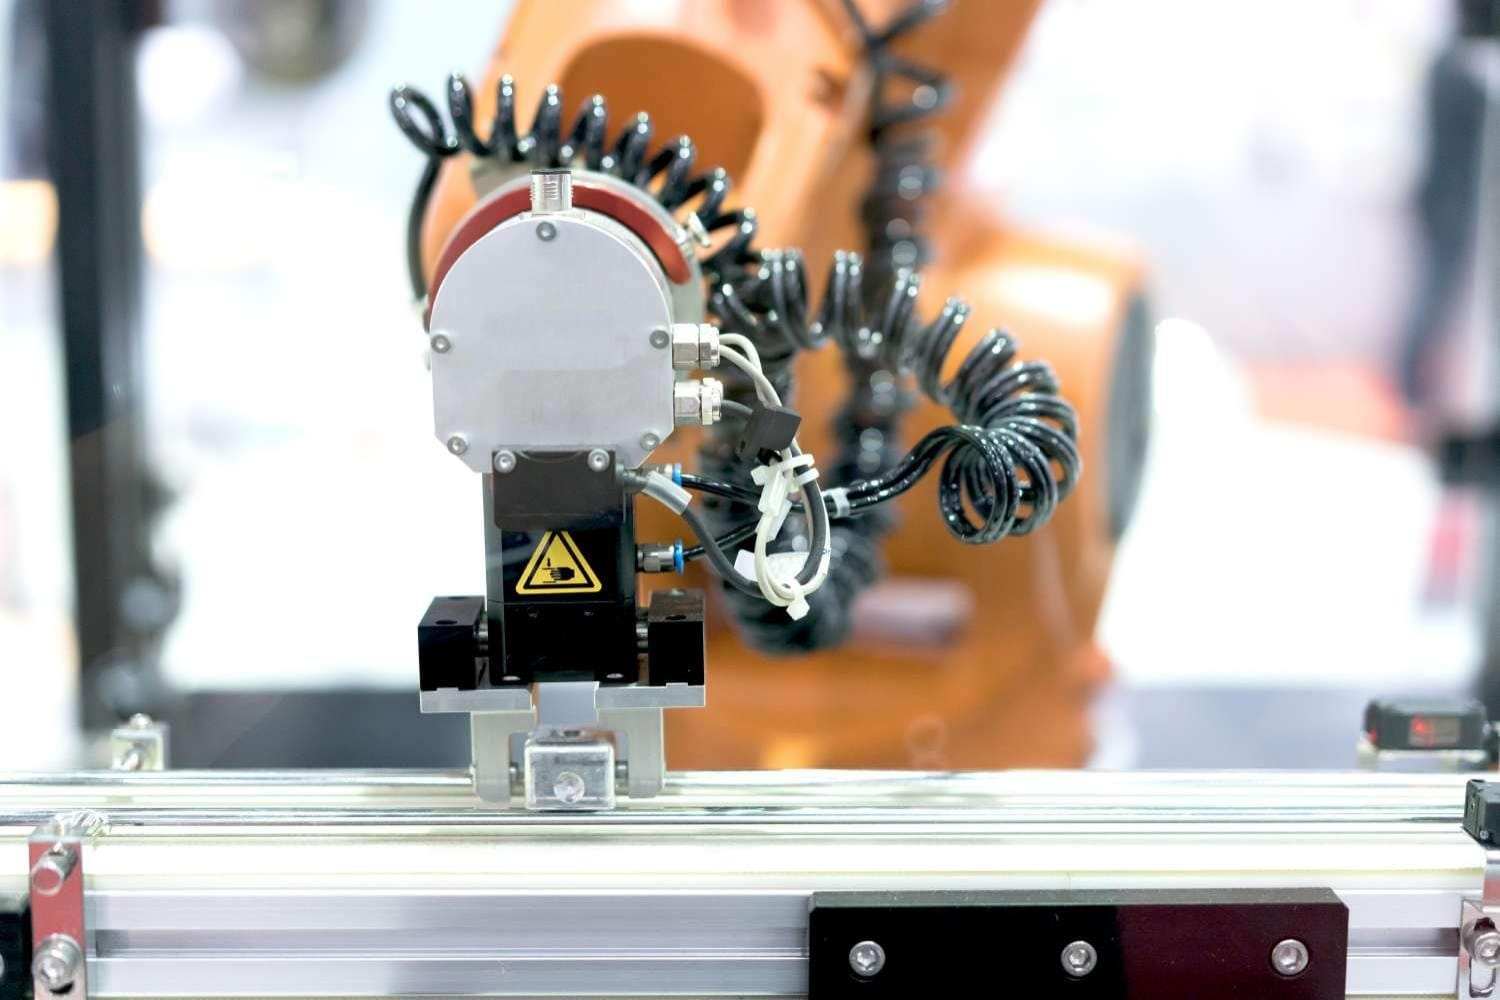 Automatic robot arm with imaging sensor in assembly line working in factory -- smart factory industry 4.0 concept